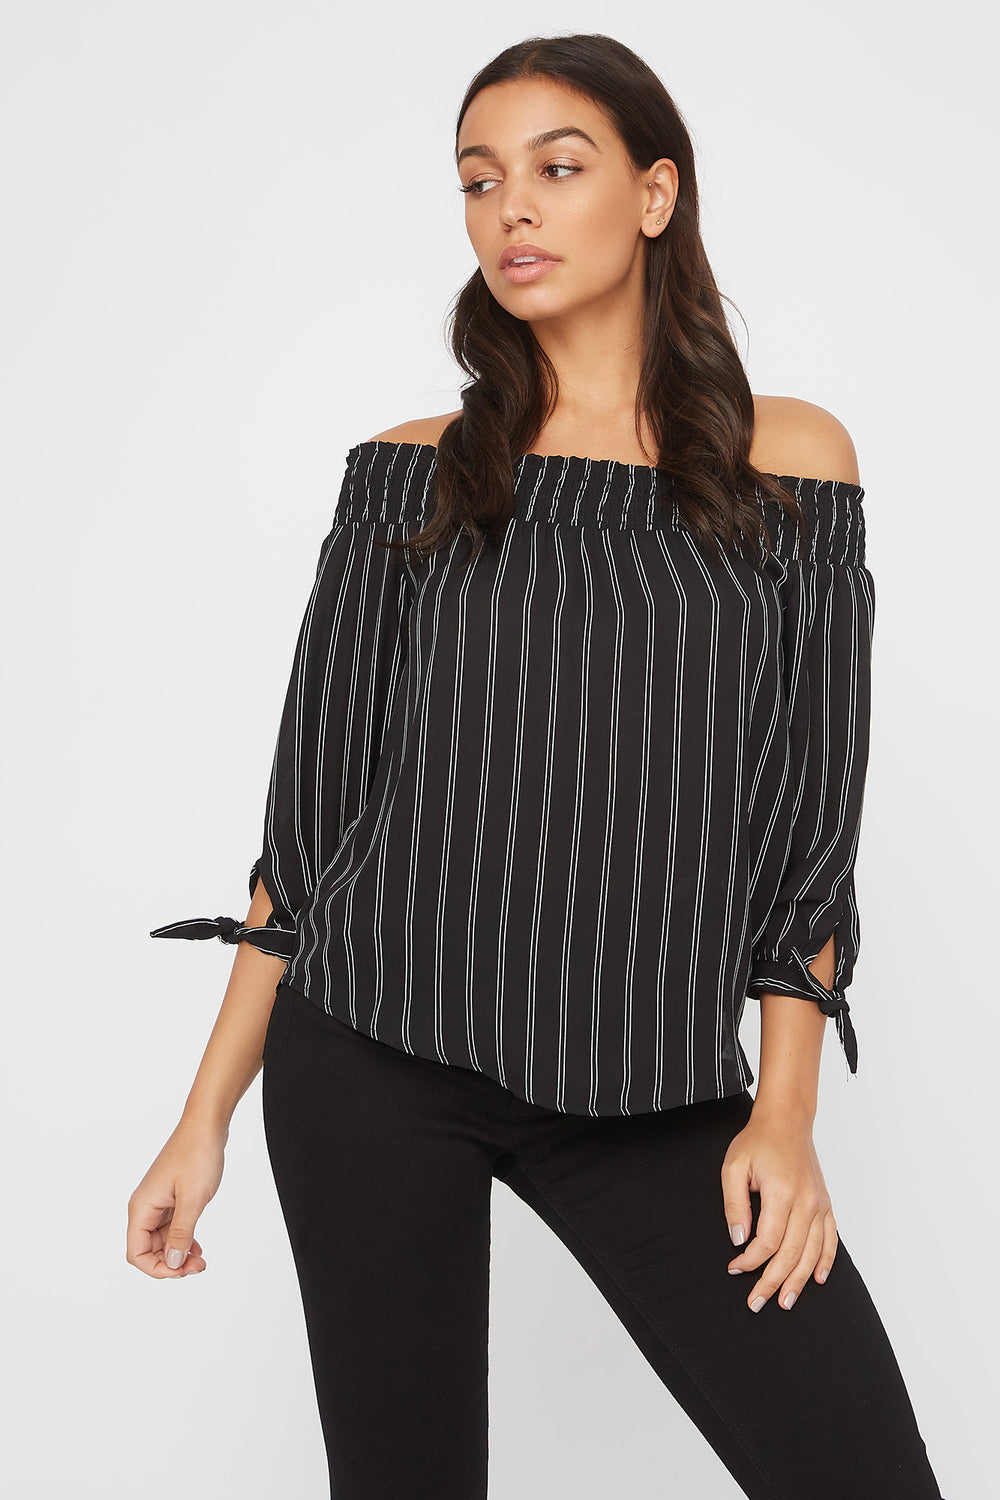 Striped Off The Shoulder Tie Sleeve Blouse Black with White